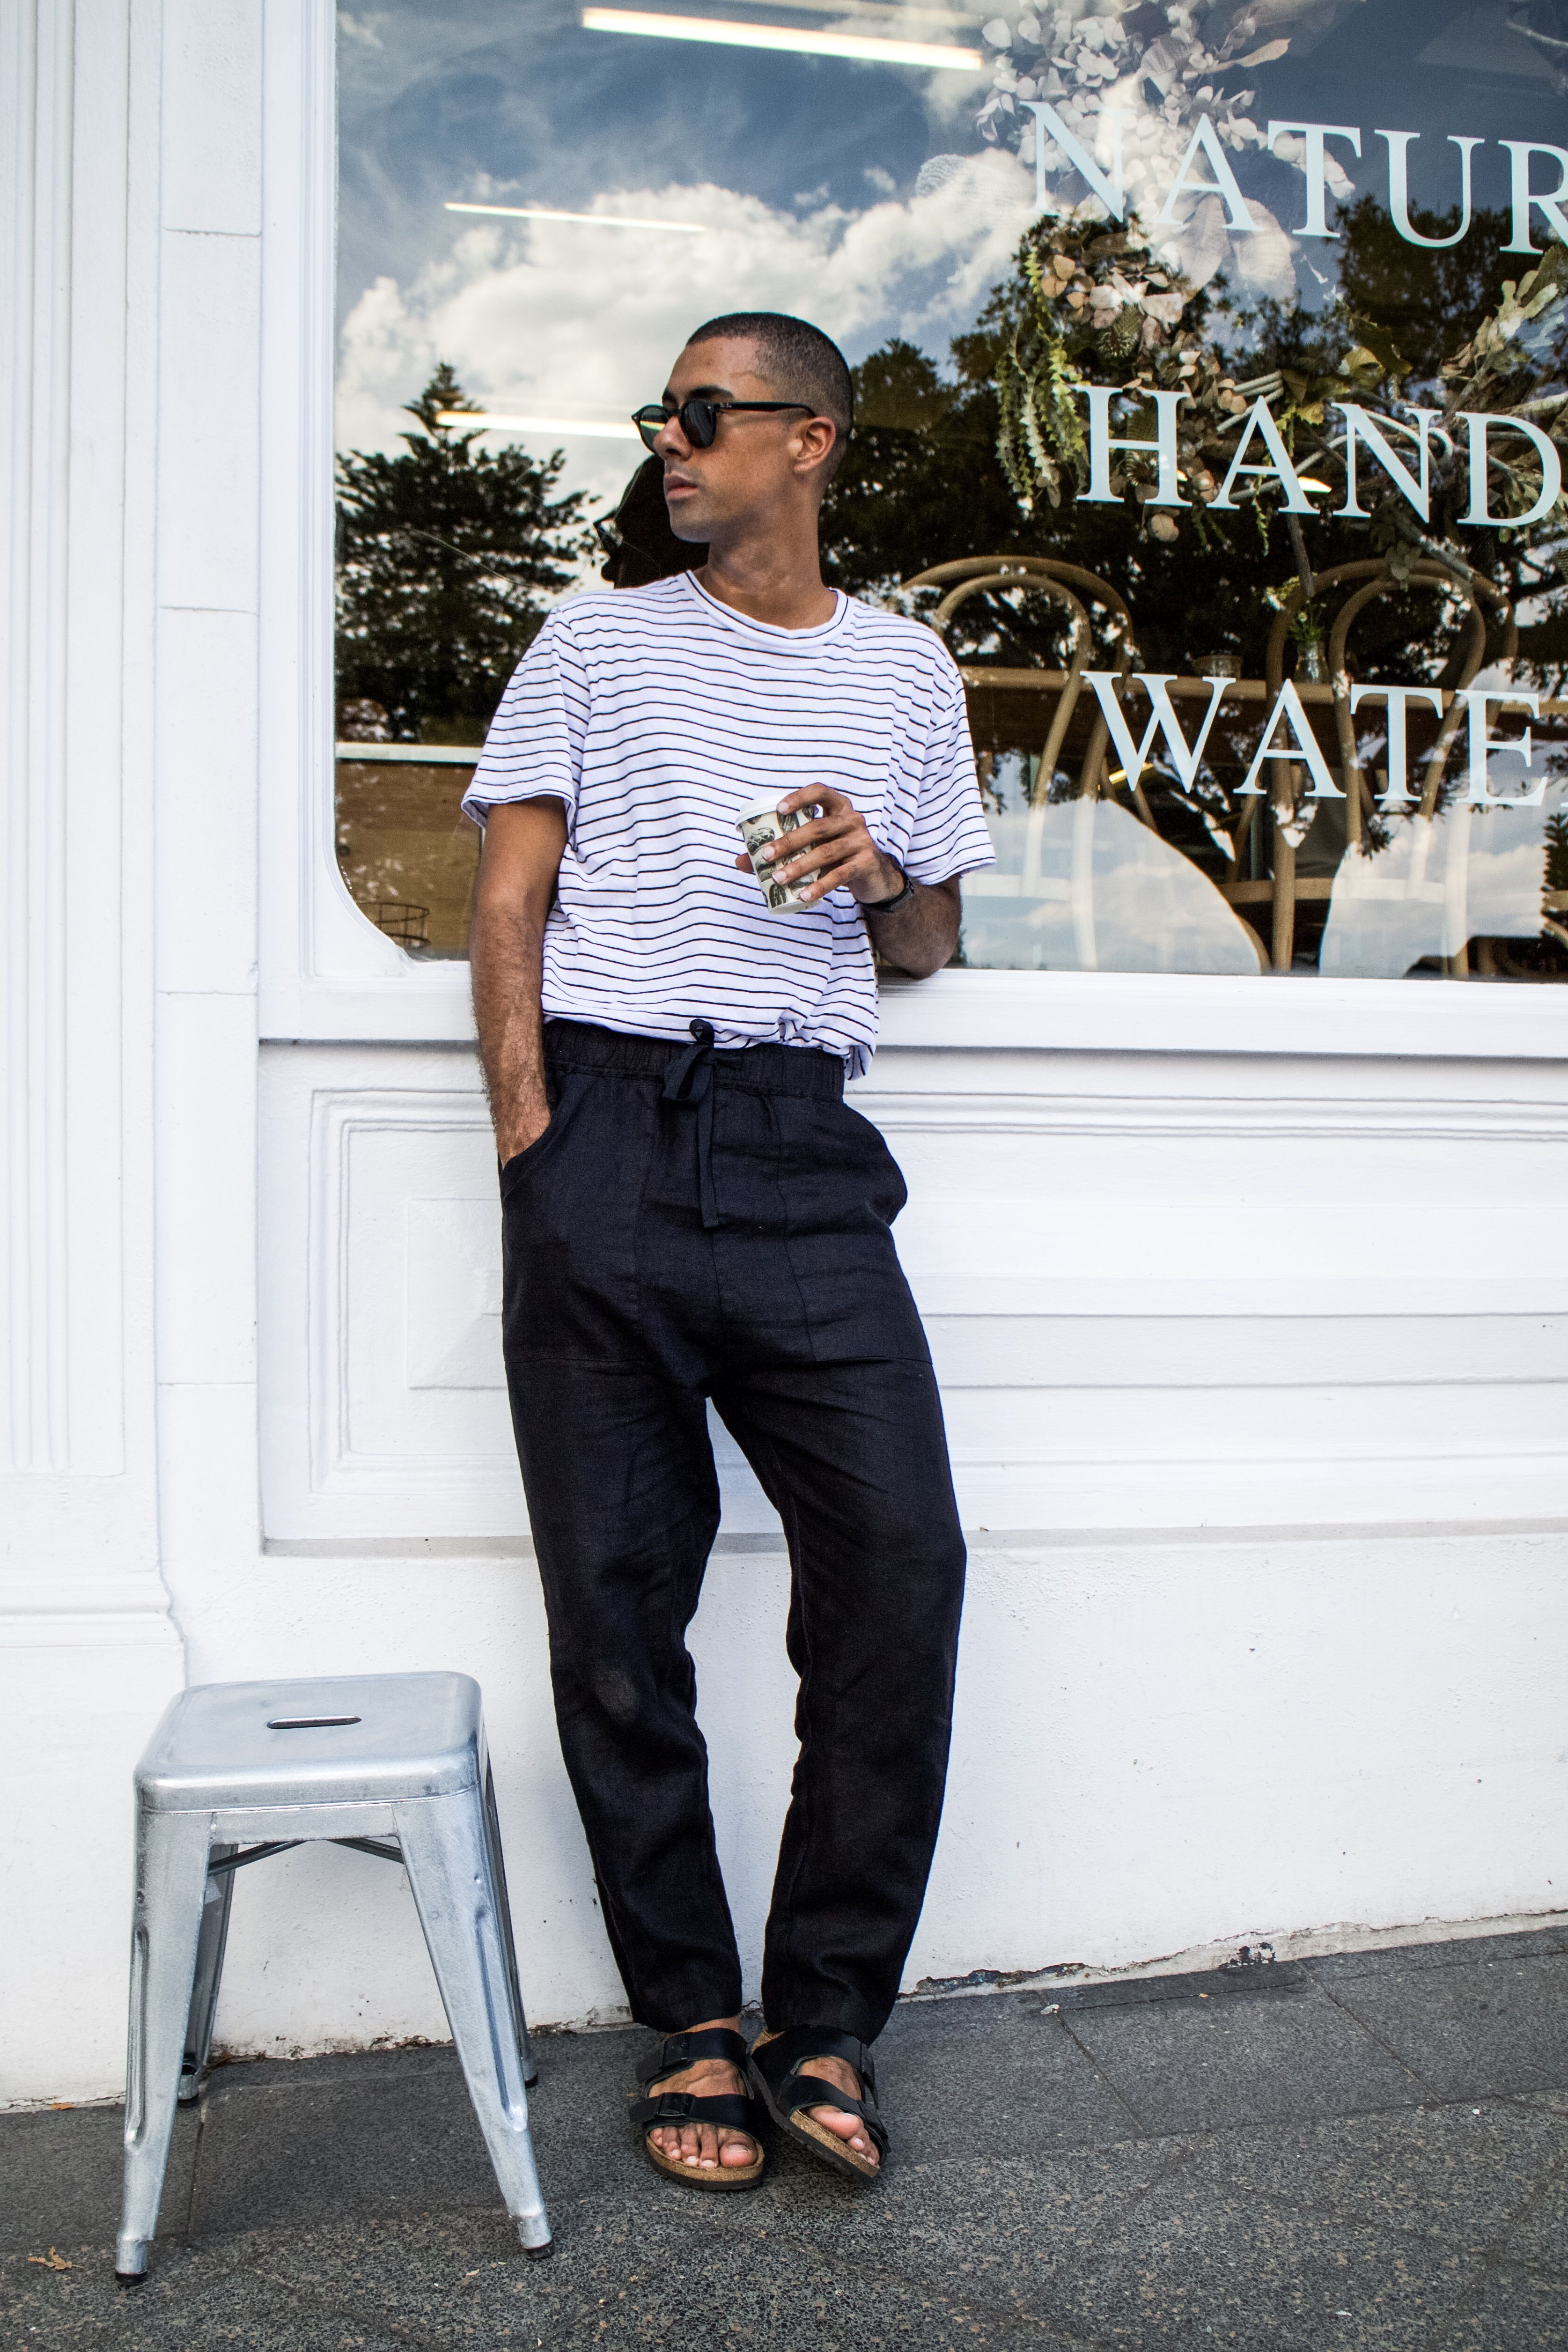 ad0b3397433 Mens Fashion Style   Outfit inspo by Blogger MR TURNER. Assembly Label linen  pants and striped tee with Birkenstock shoes.